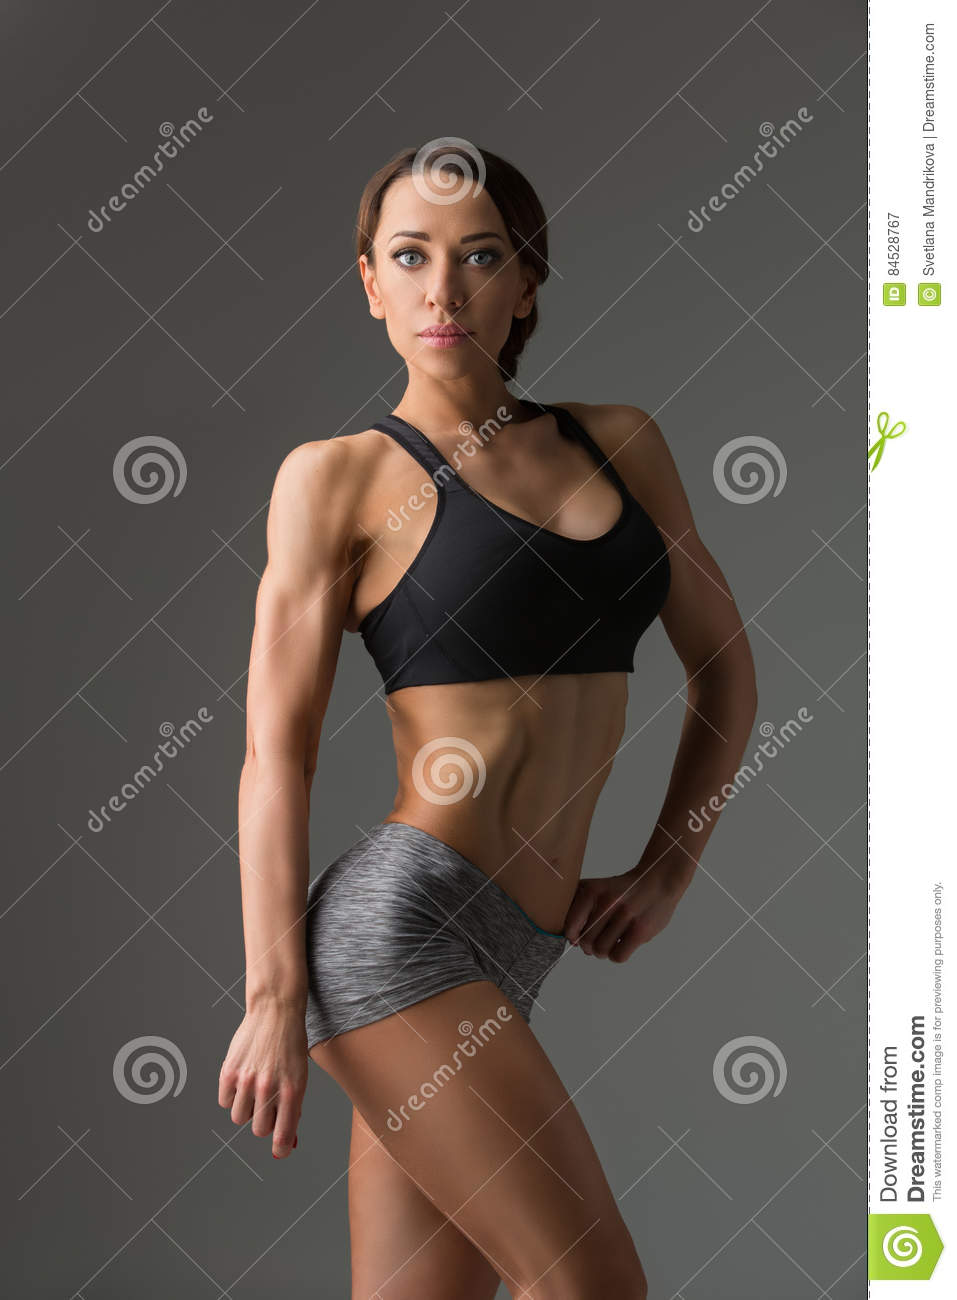 Beautiful Fit Girl In Sport Bra And Shorts Stock Image